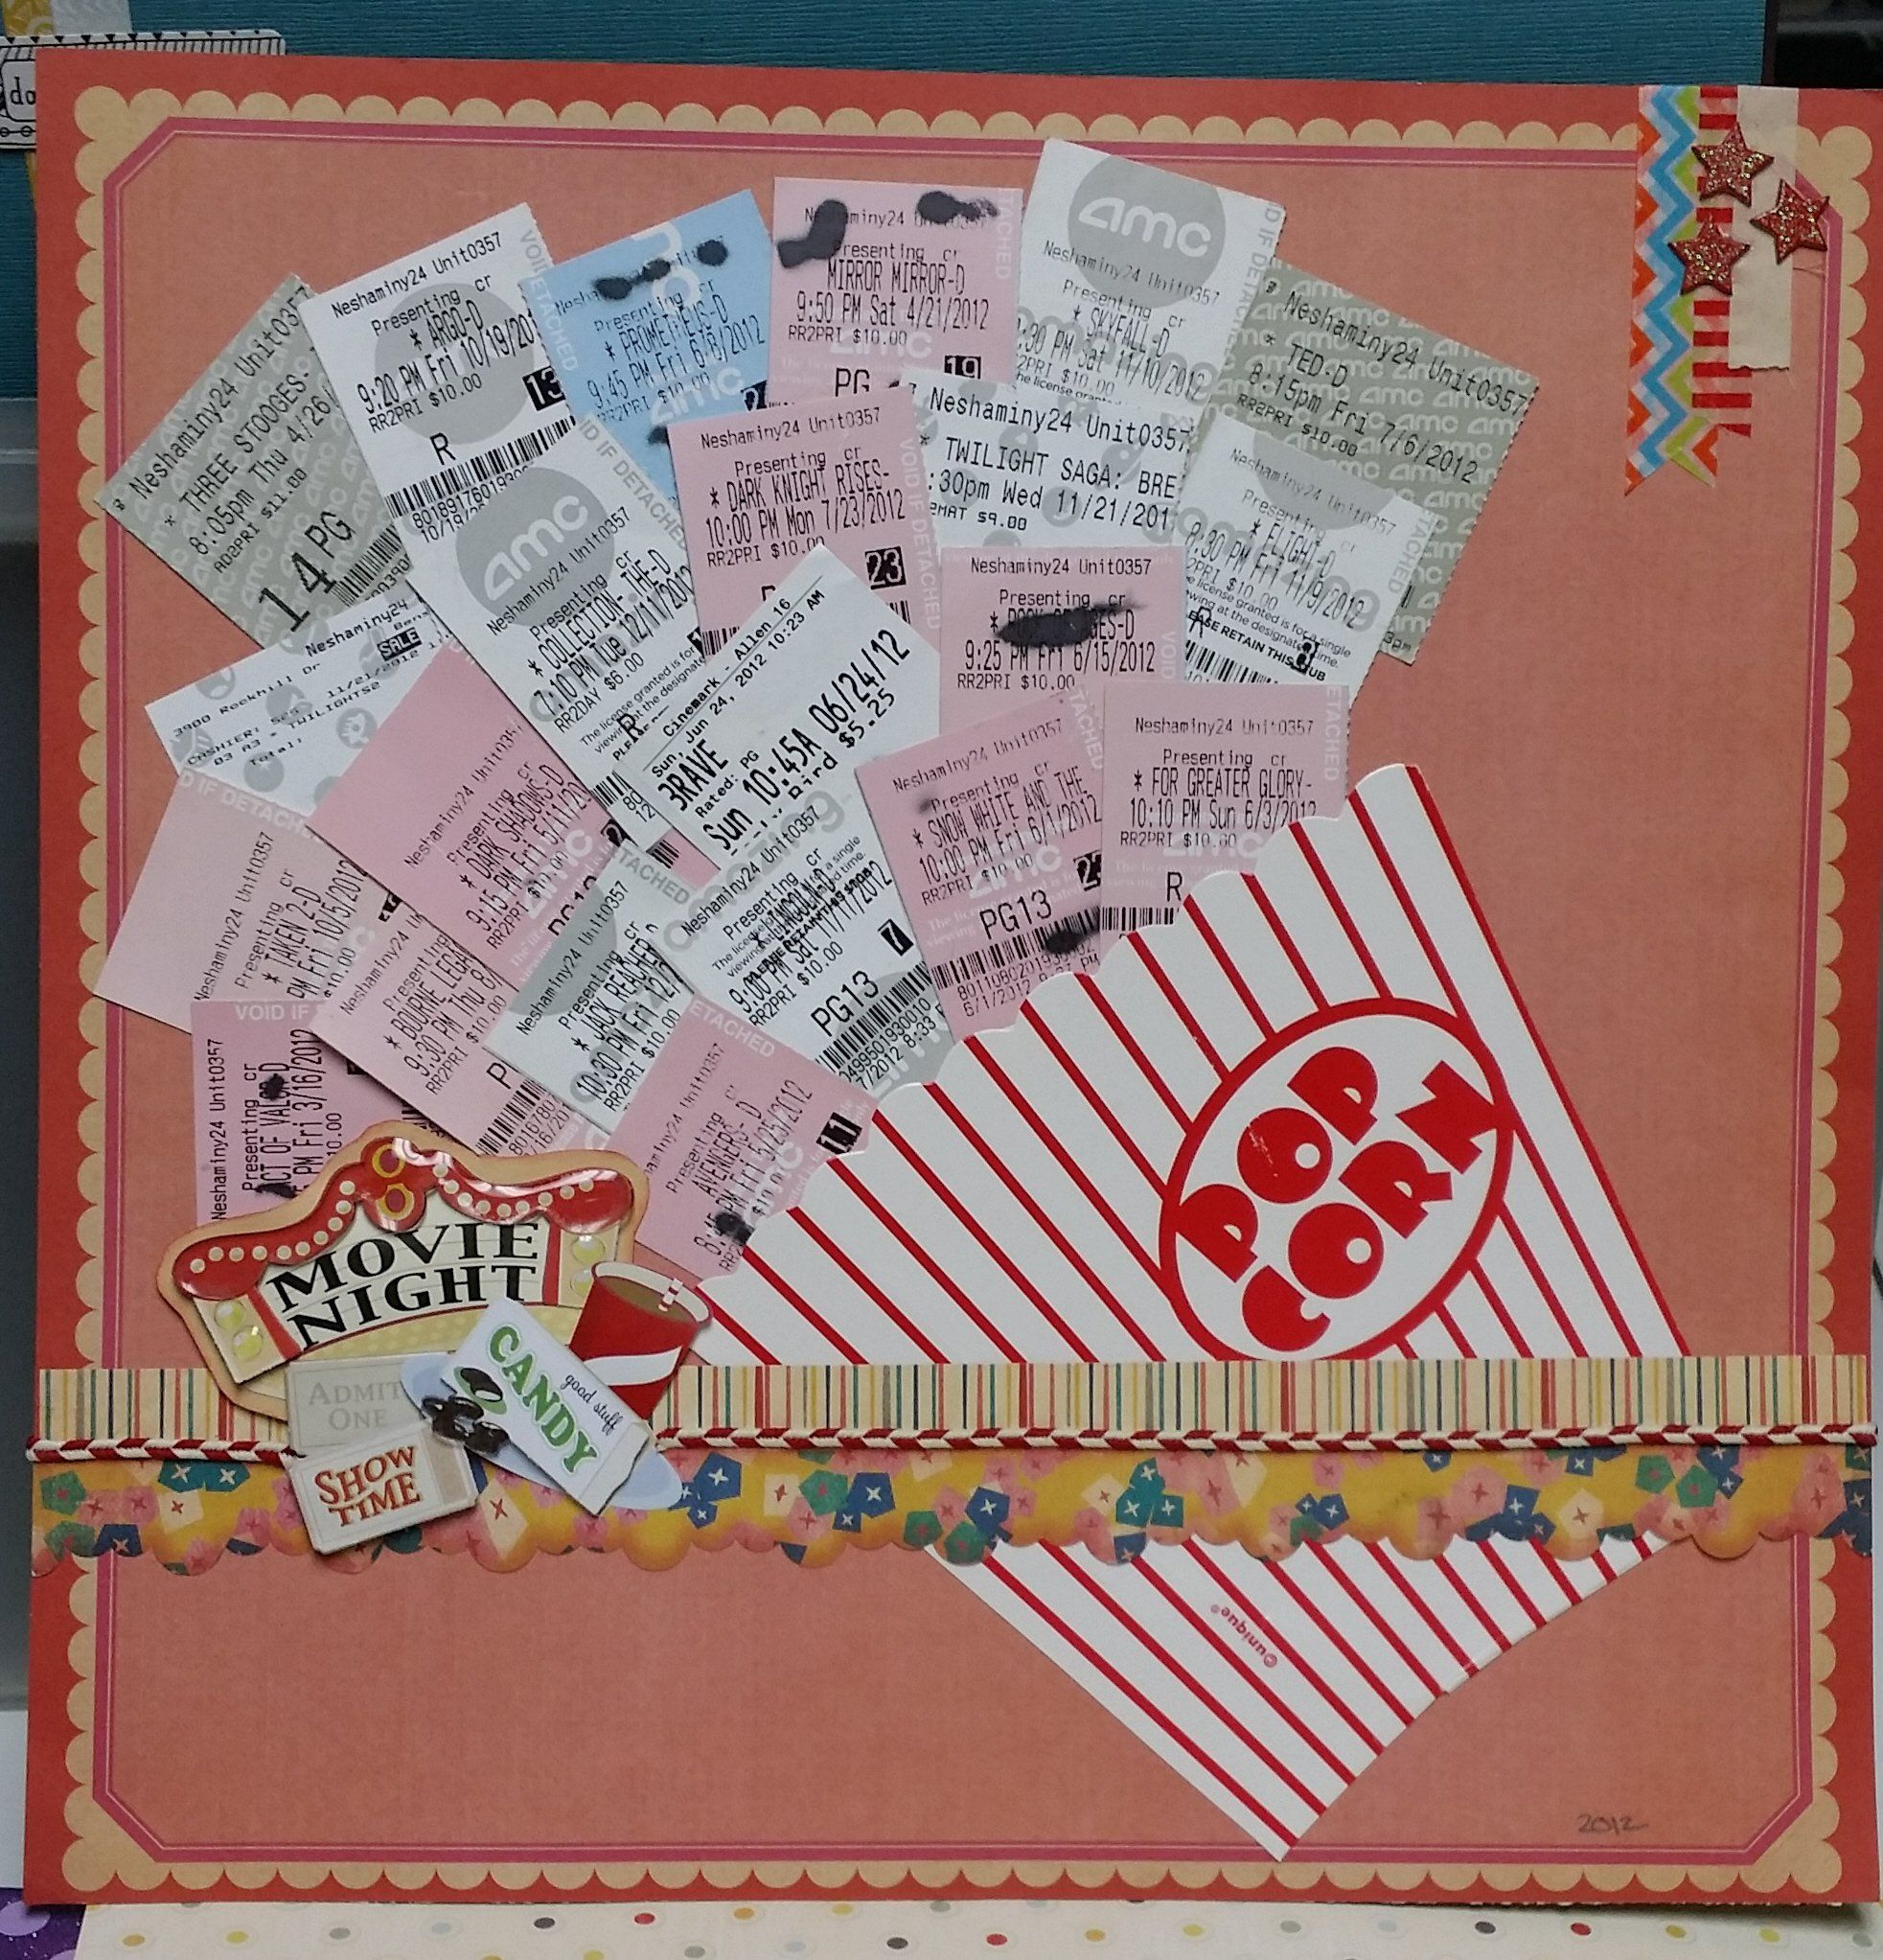 Movie Night Scrapbook Or An Interesting Page For Tickets From